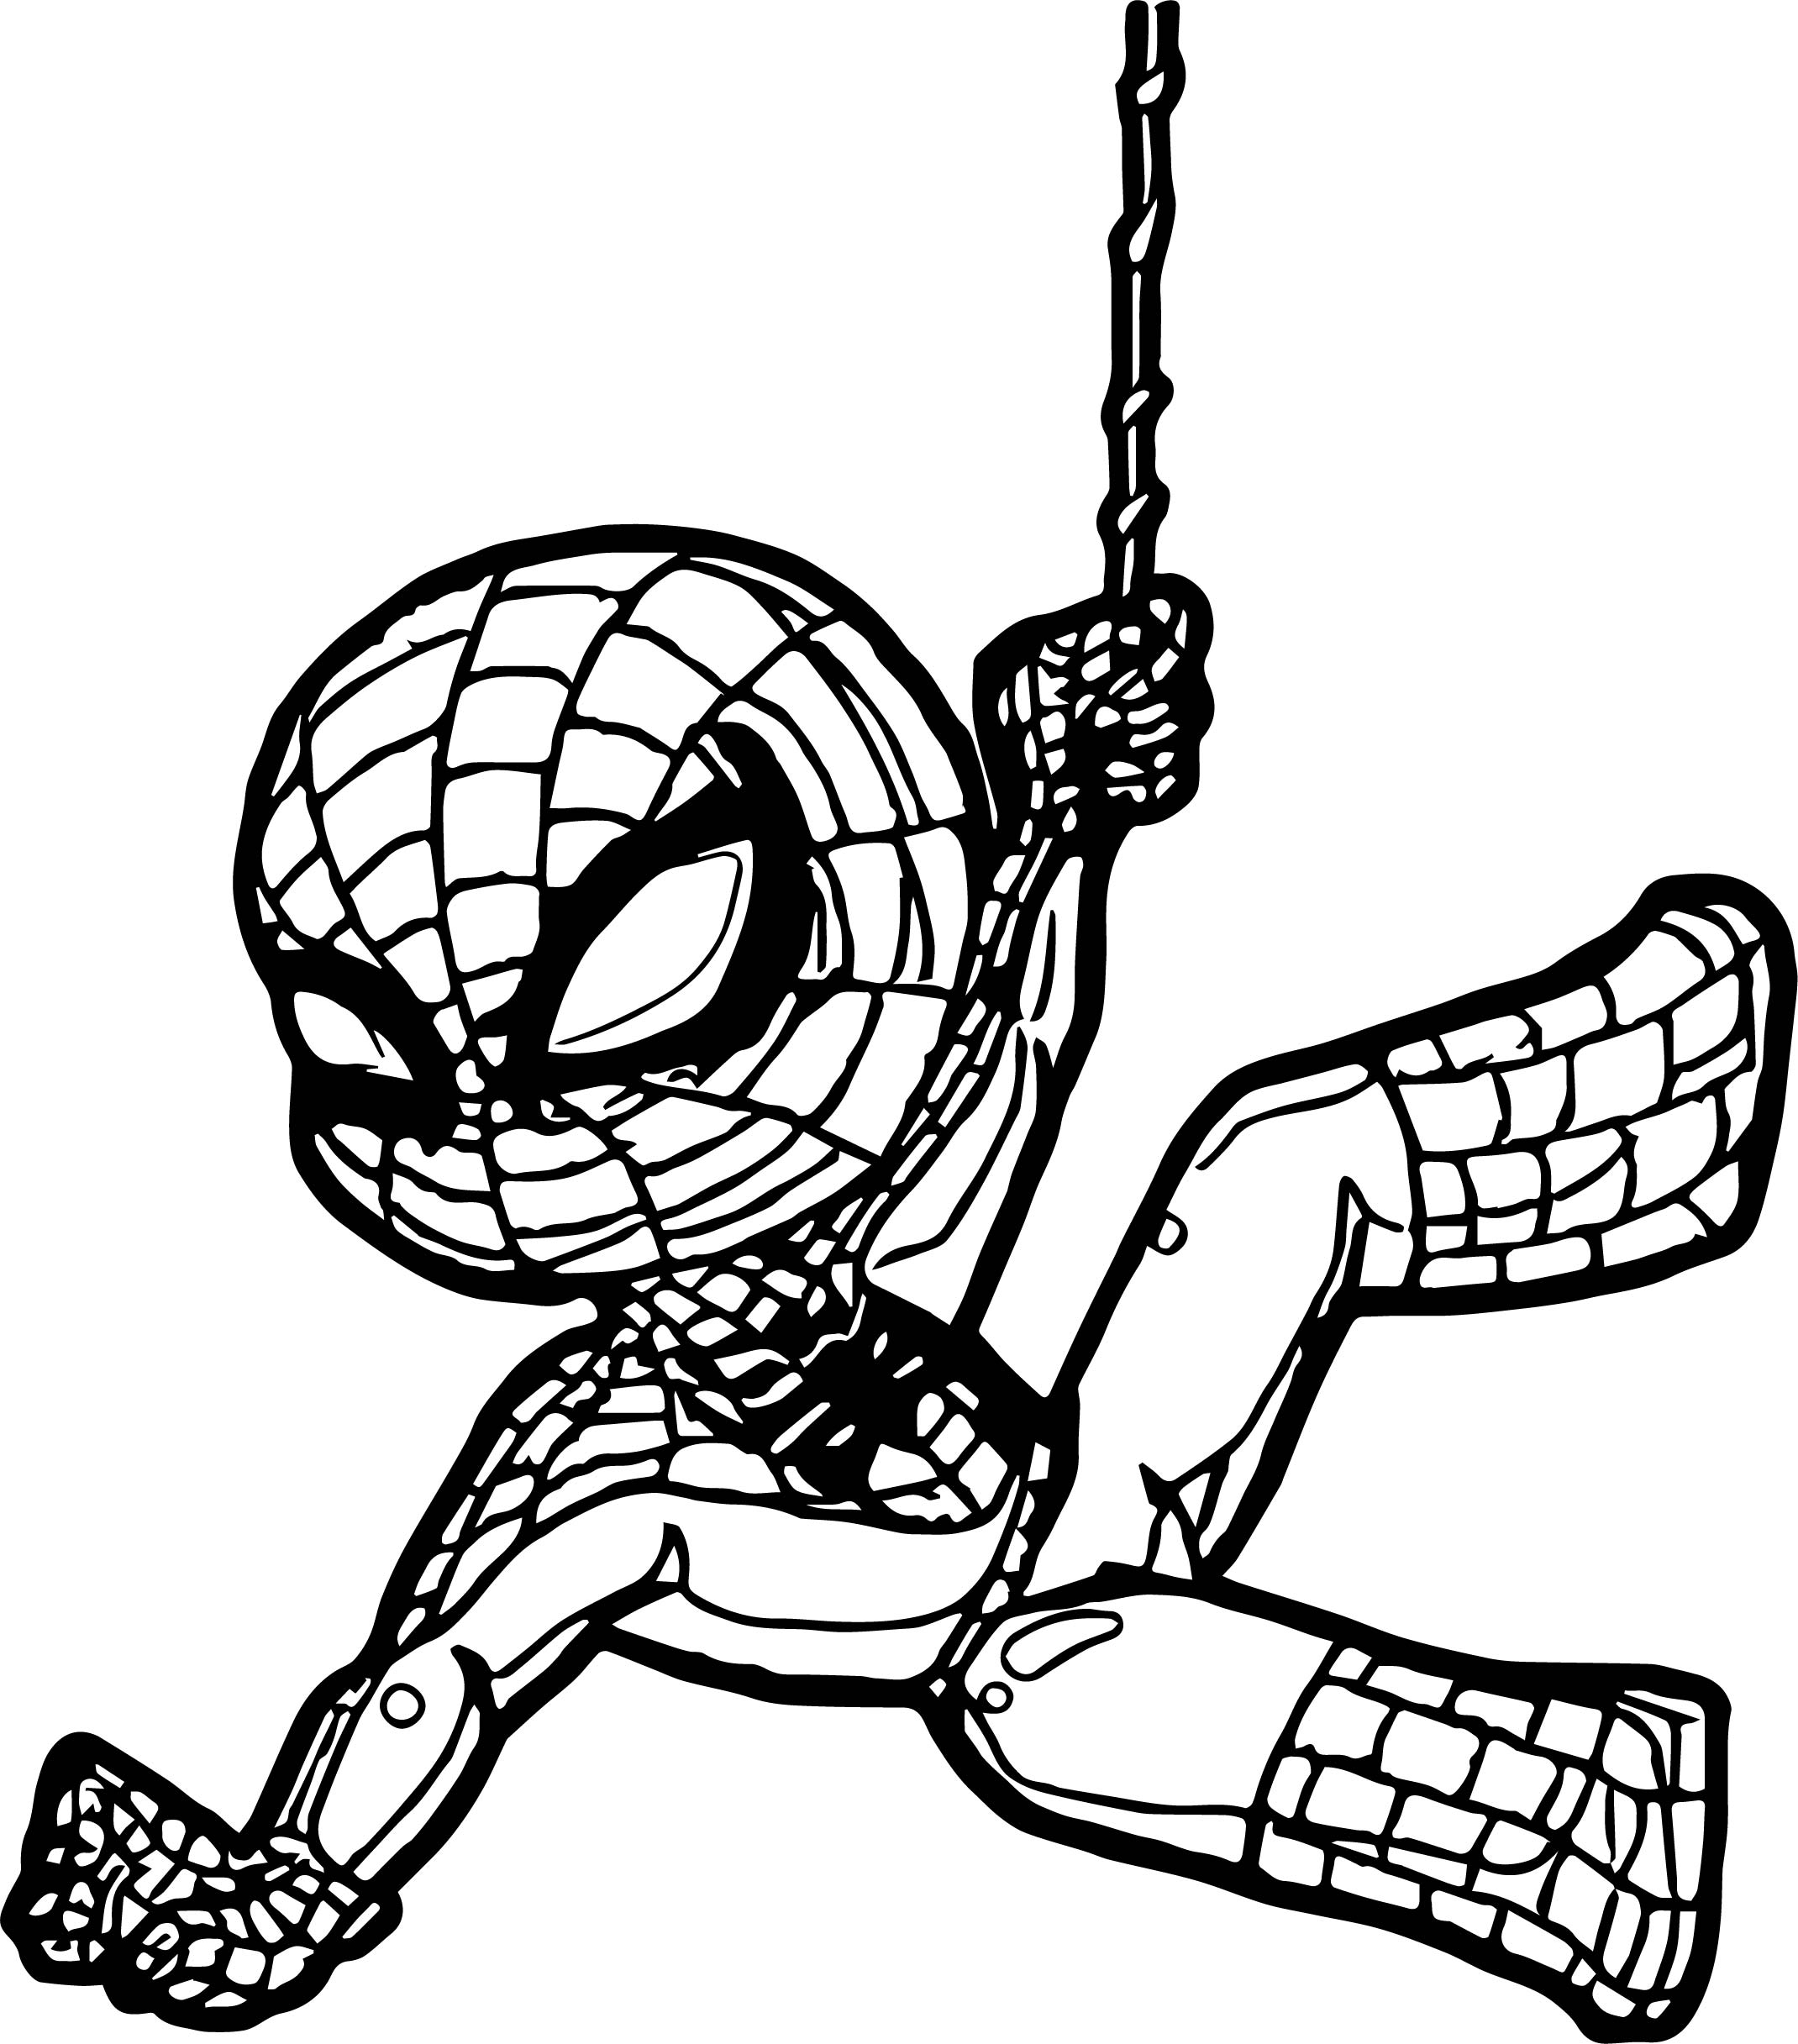 Baby Spiderman Coloring Pages at GetDrawings | Free download